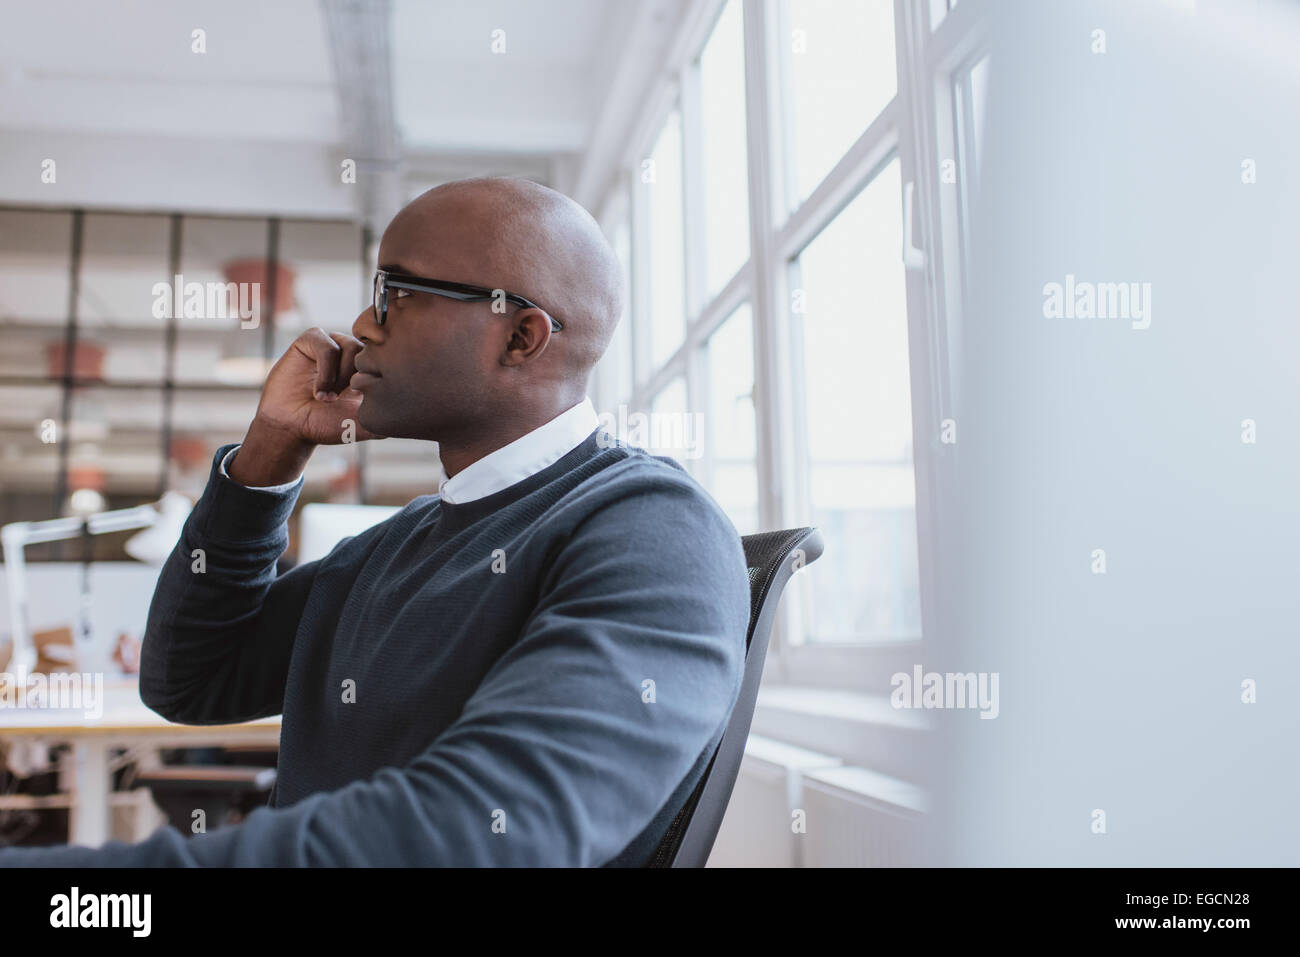 Side view of african executive sitting at his desk using mobile phone. Young man at work answering a phone call. - Stock Image